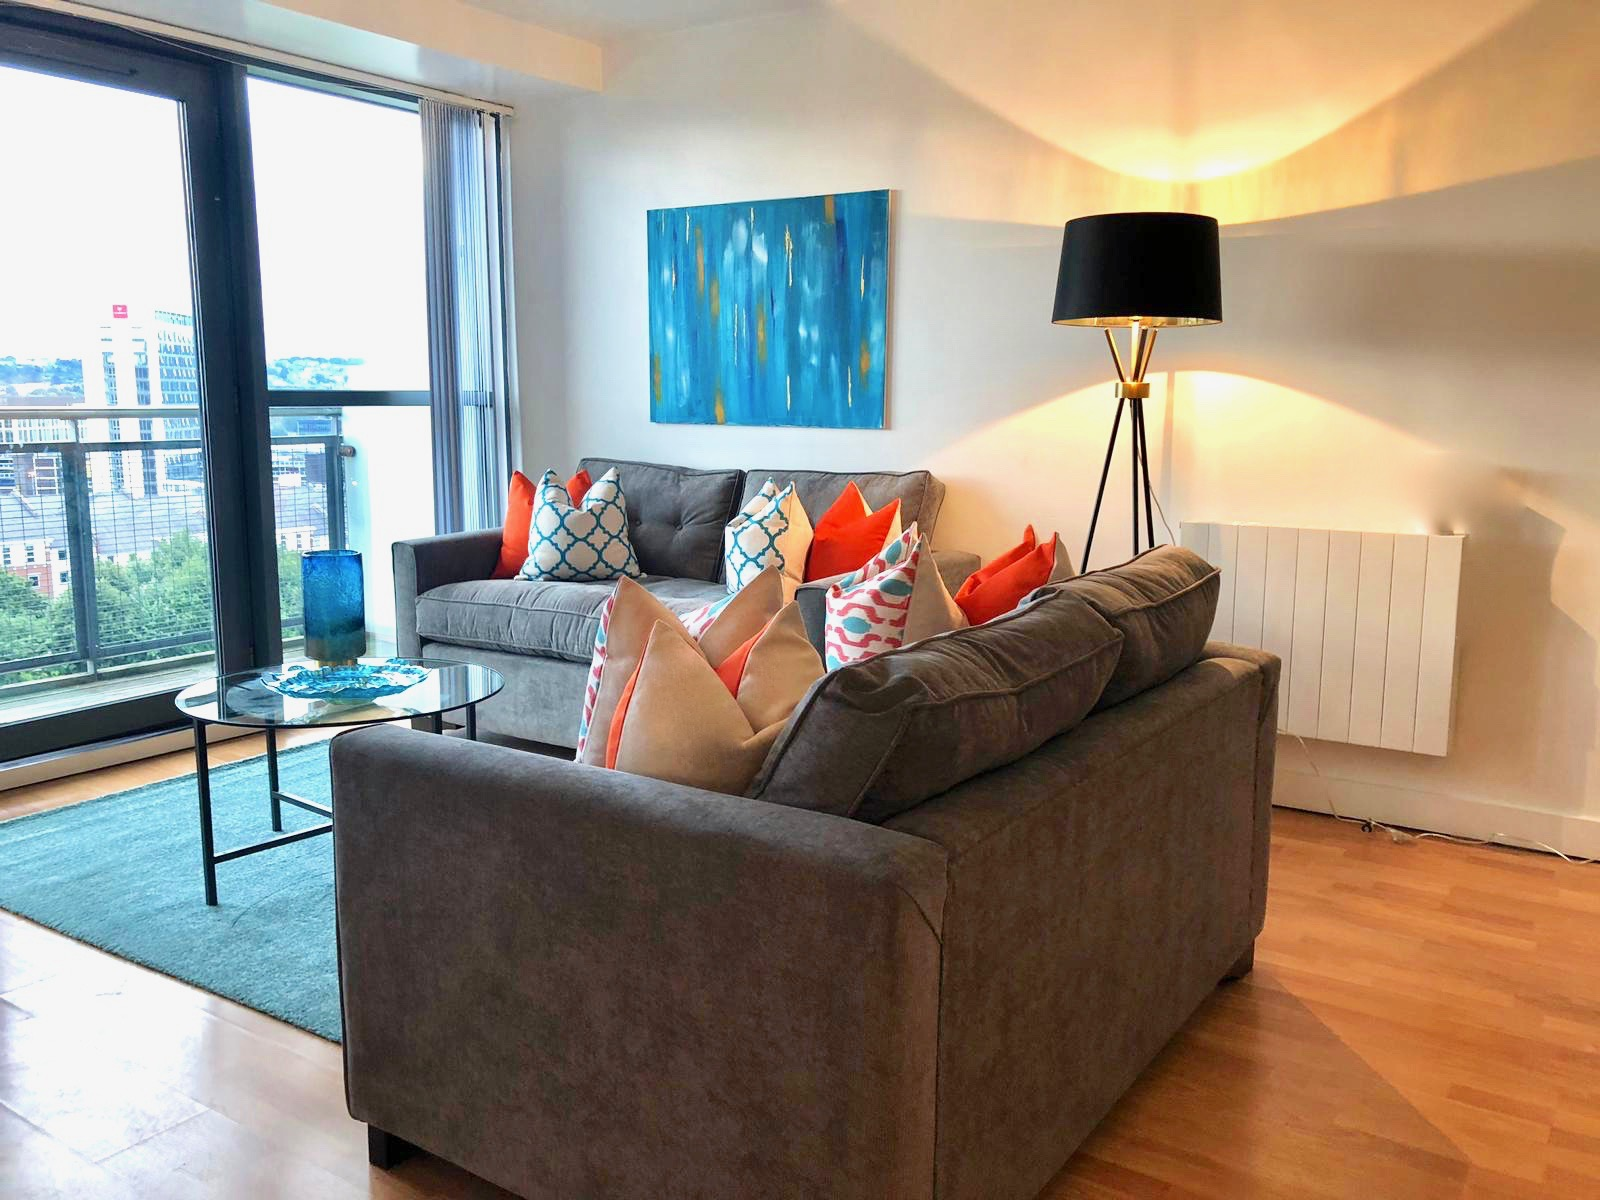 Living room and Sofa bed at West One Apartment, Centre, Sheffield - Citybase Apartments